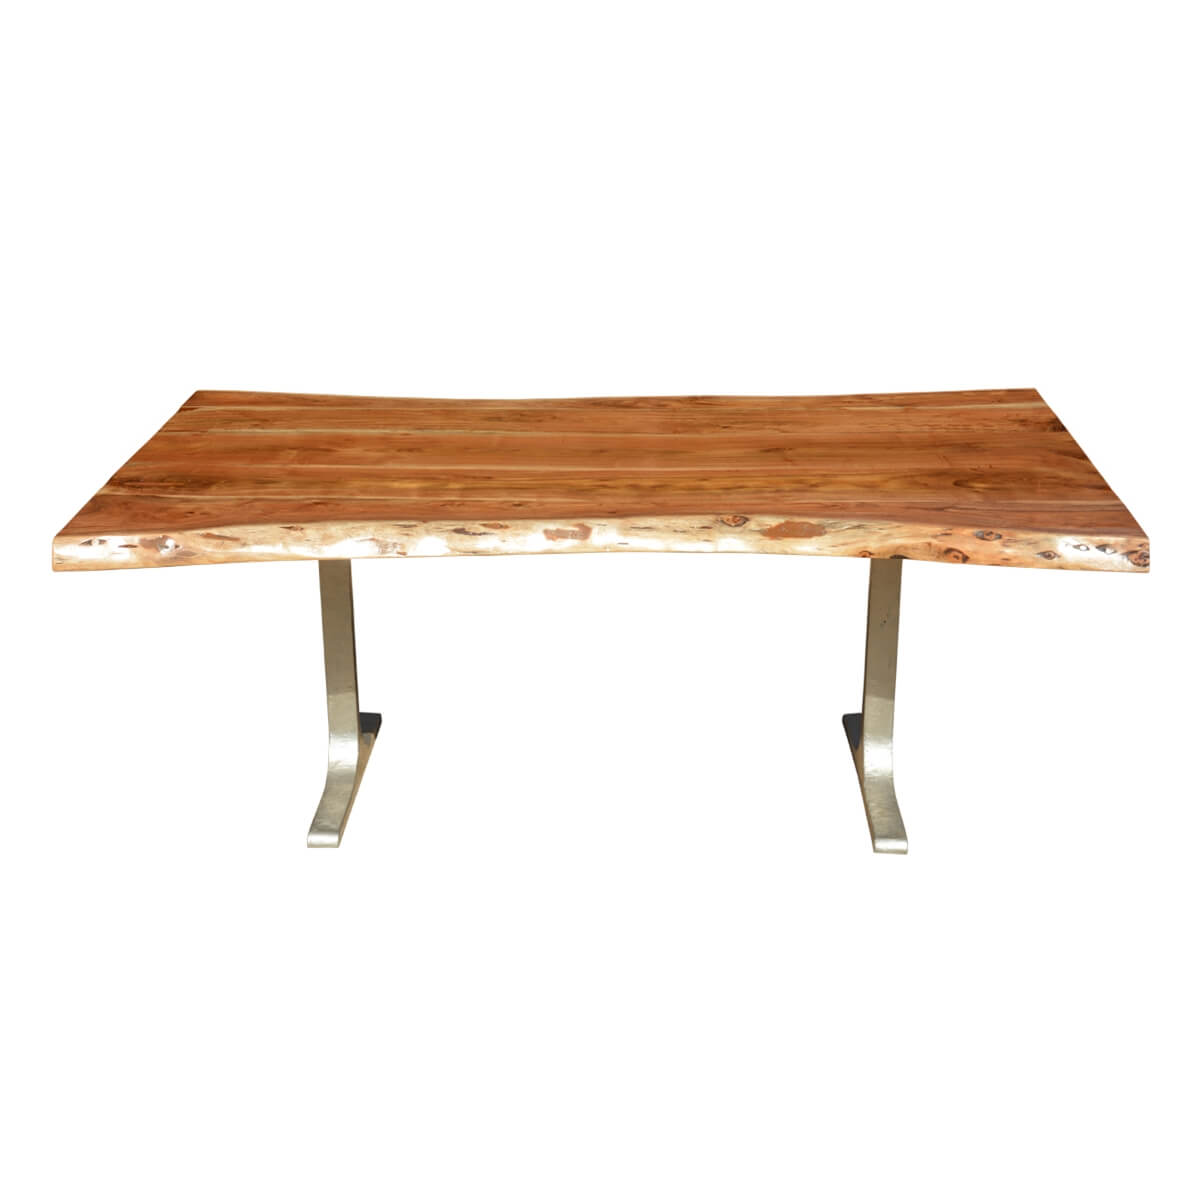 Solid Wood amp Iron Base Santa Fe Live Edge Dining Table : 69981 from www.sierralivingconcepts.com size 1200 x 1200 jpeg 173kB